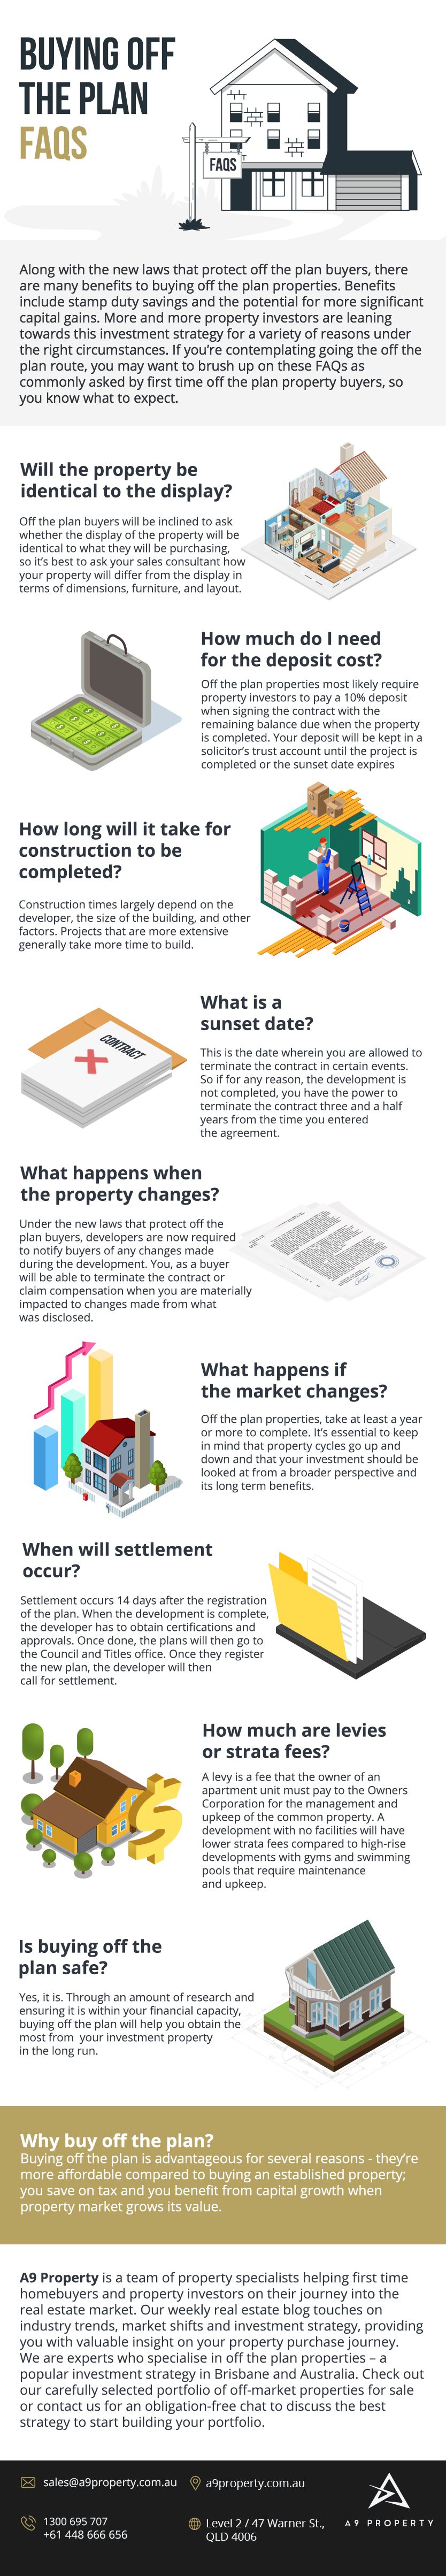 Buying off the plan FAQs – [Infographic] | A9 Property, Brisbane Real Estate